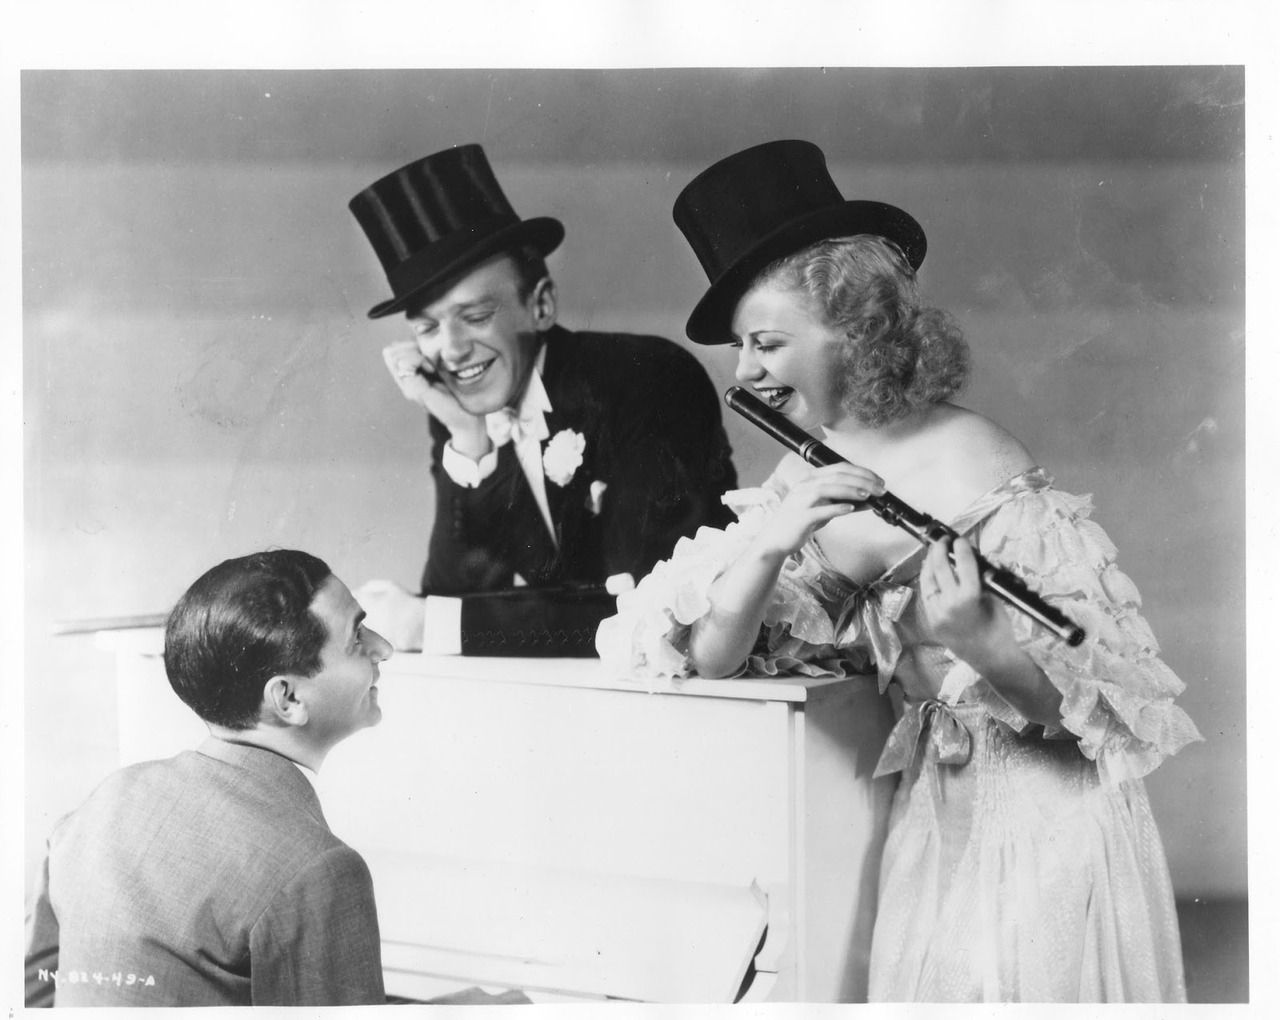 Irving Berlin, Fred Astaire and Ginger Rogers 1930's